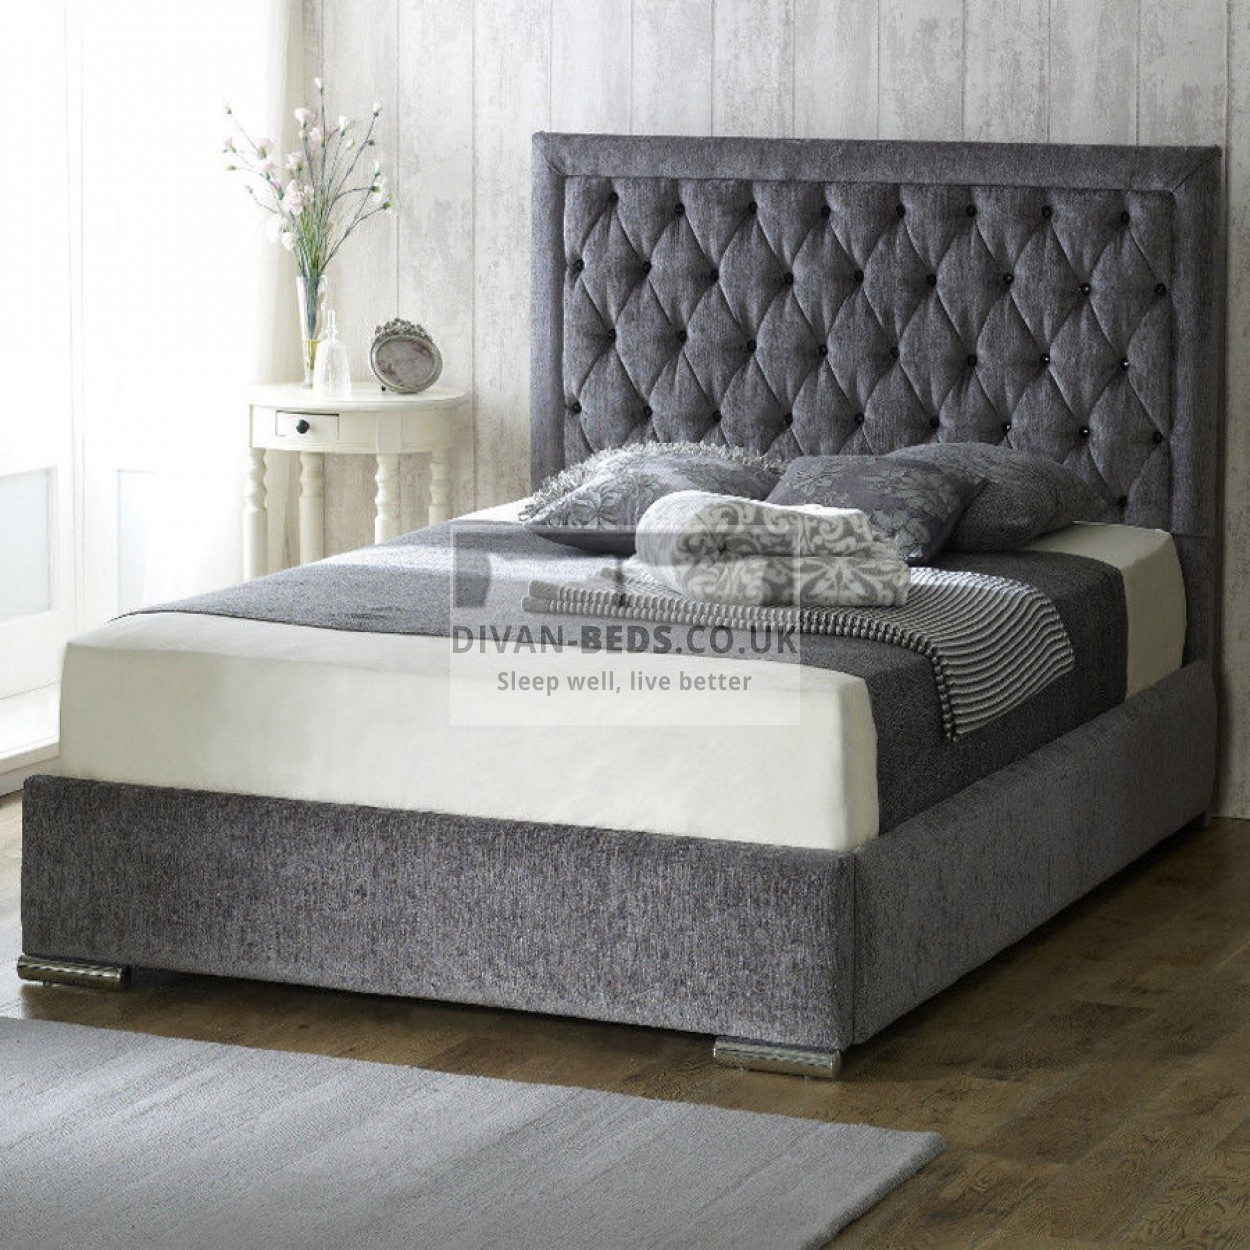 Belinha fabric upholstered bed frame guaranteed cheapest for Upholstered beds